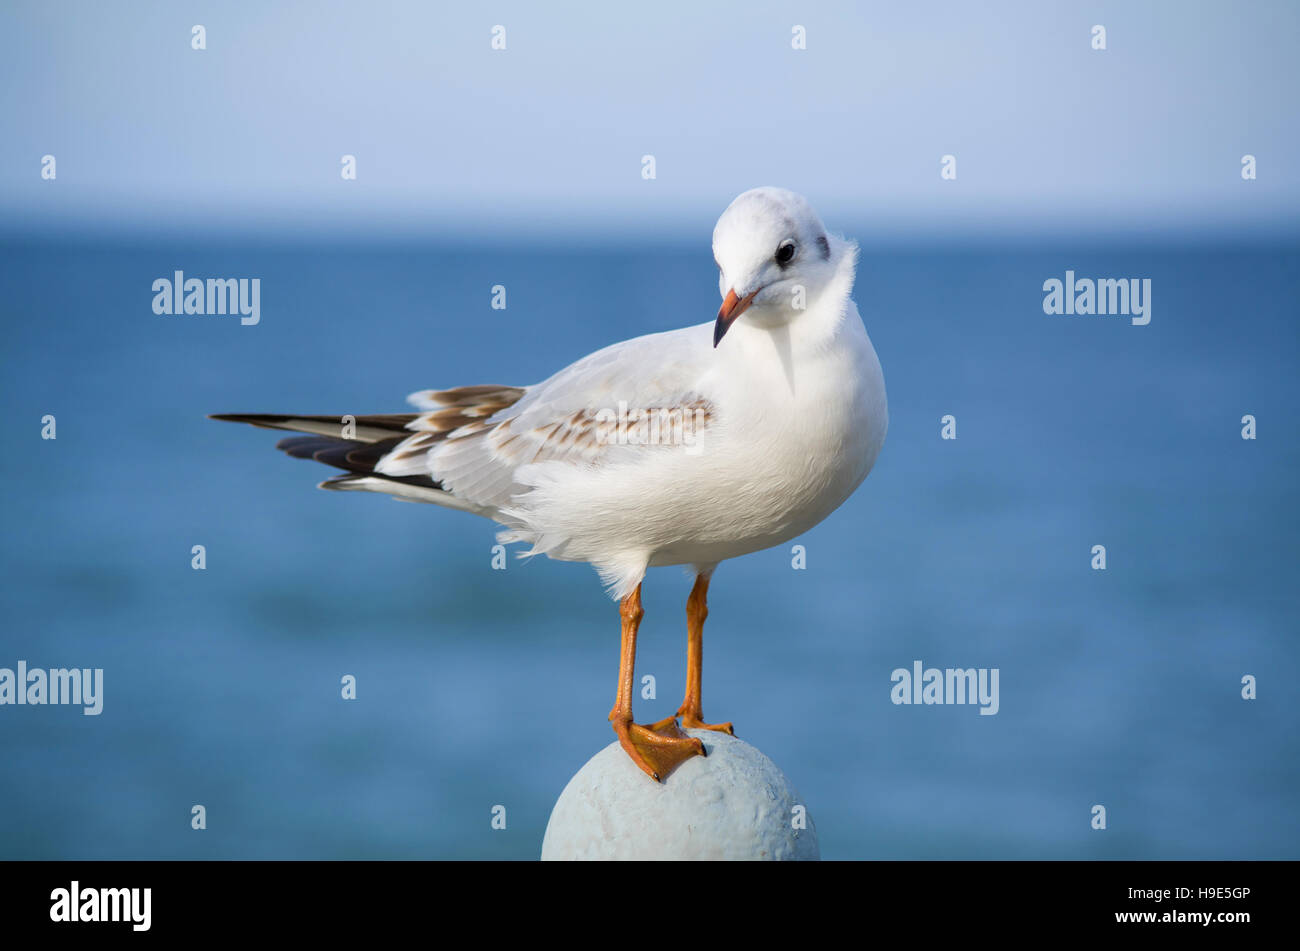 Coquettish little gull on a sea background - Stock Image